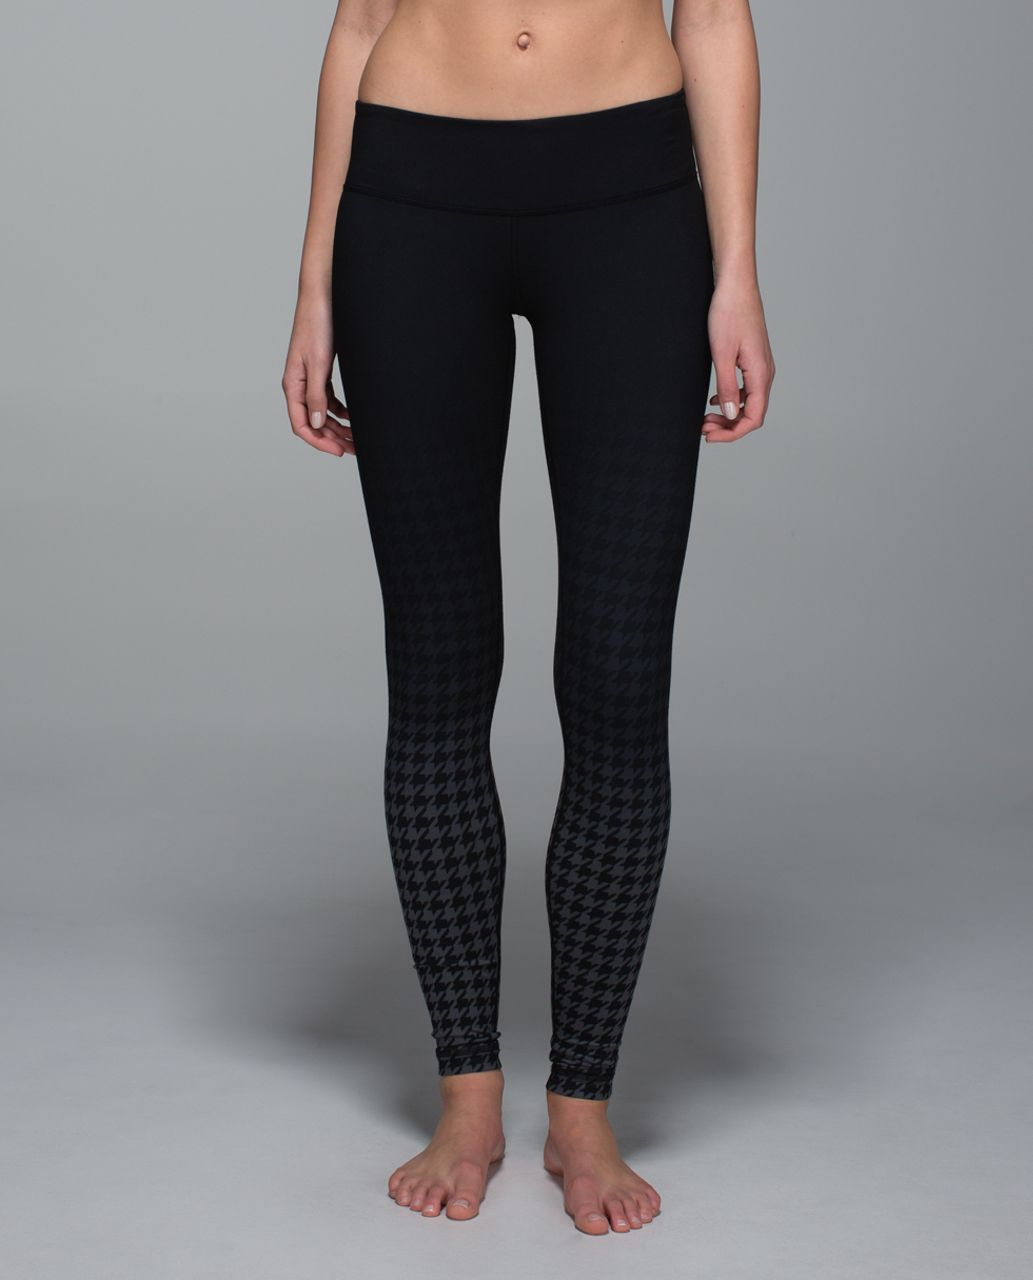 Lululemon Wunder Under Pant *Full-On Luon - Giant Houndstooth Dip Dye Deep Coal Light Black